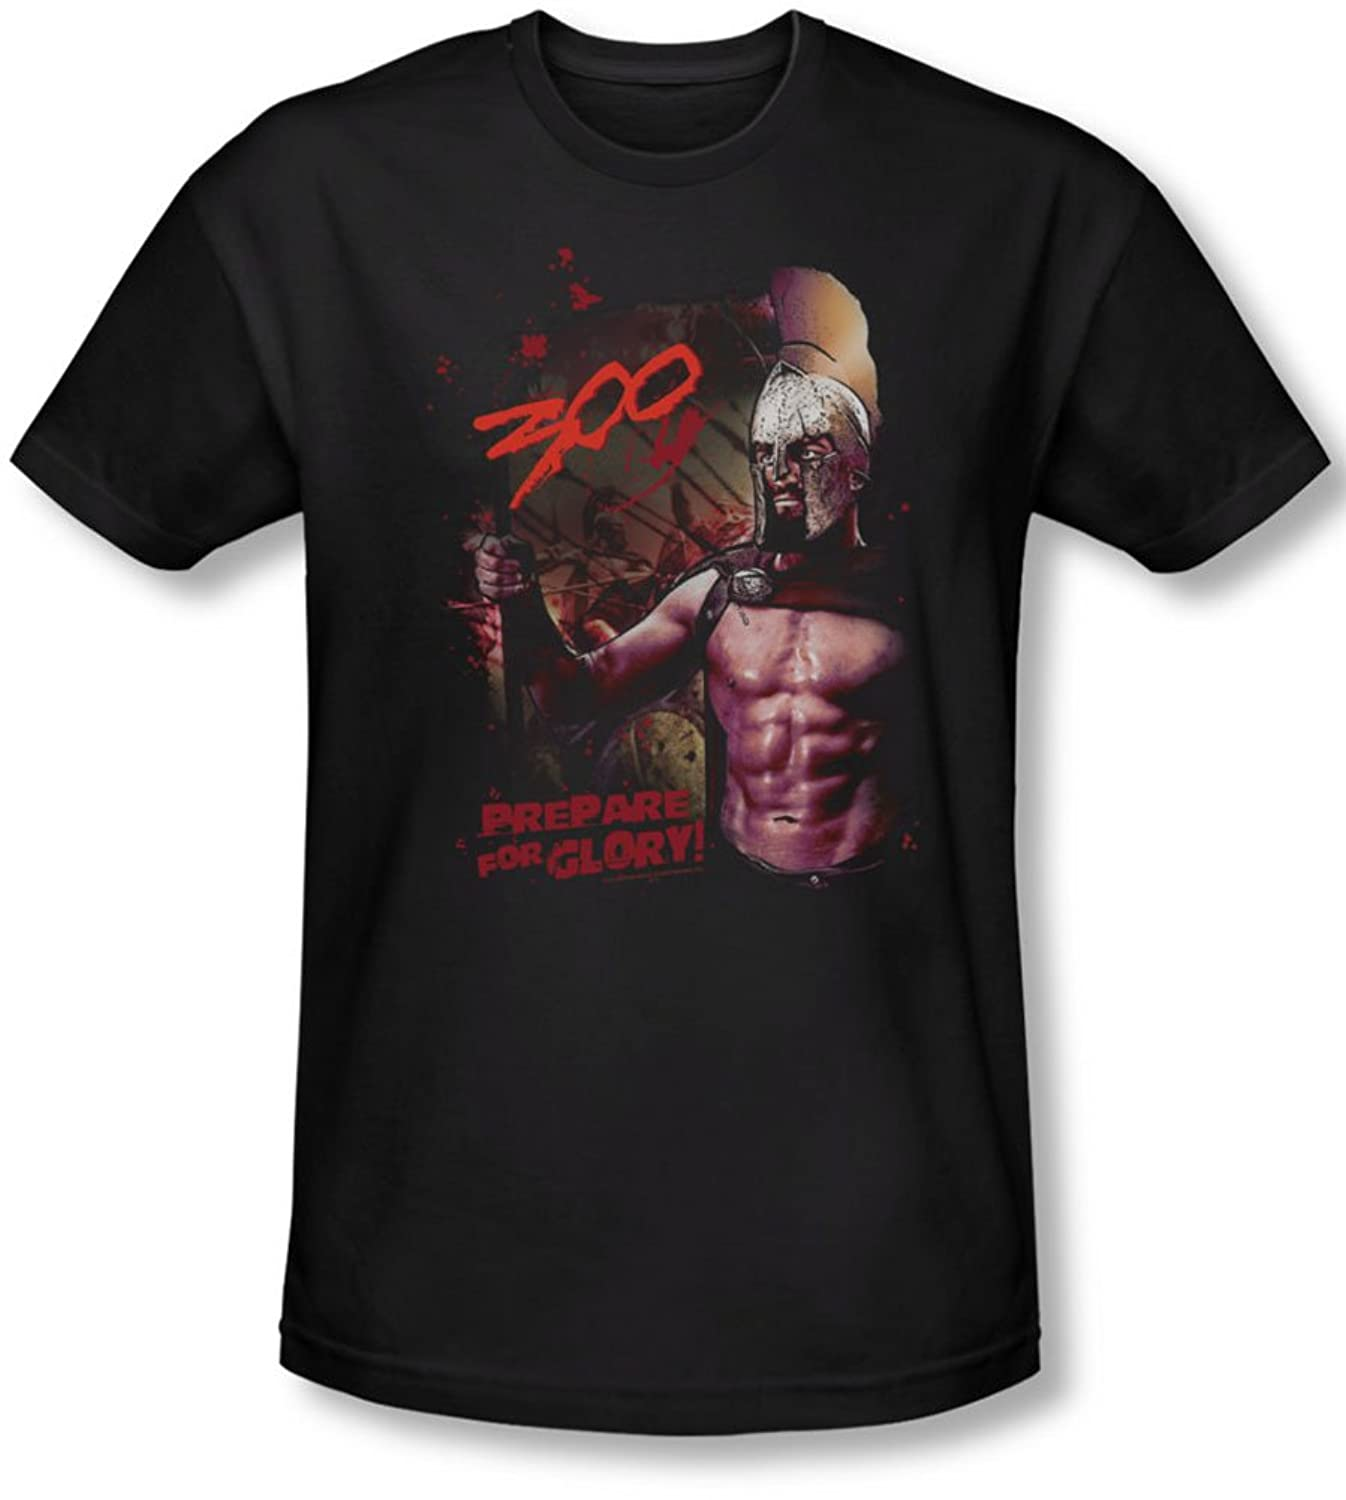 300 - Mens Prepare For Glory T-Shirt In Black